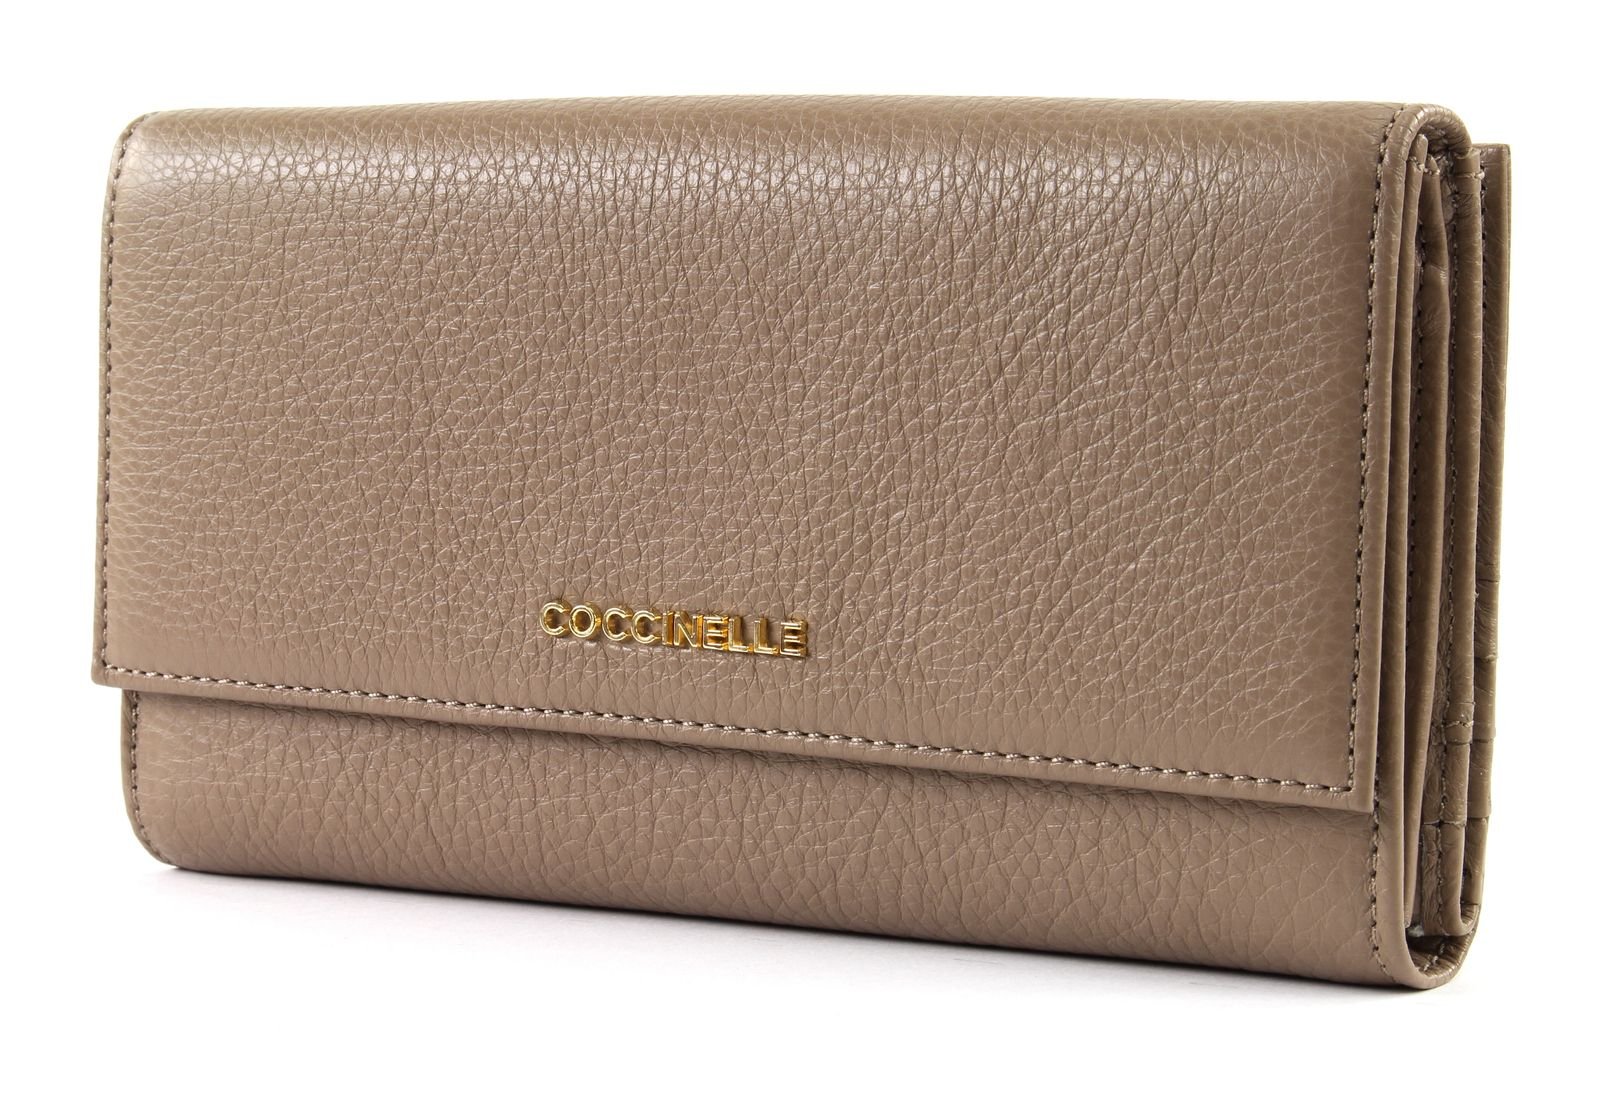 efcd3126fb7f8 COCCINELLE Metallic Soft Flap Wallet Taupe